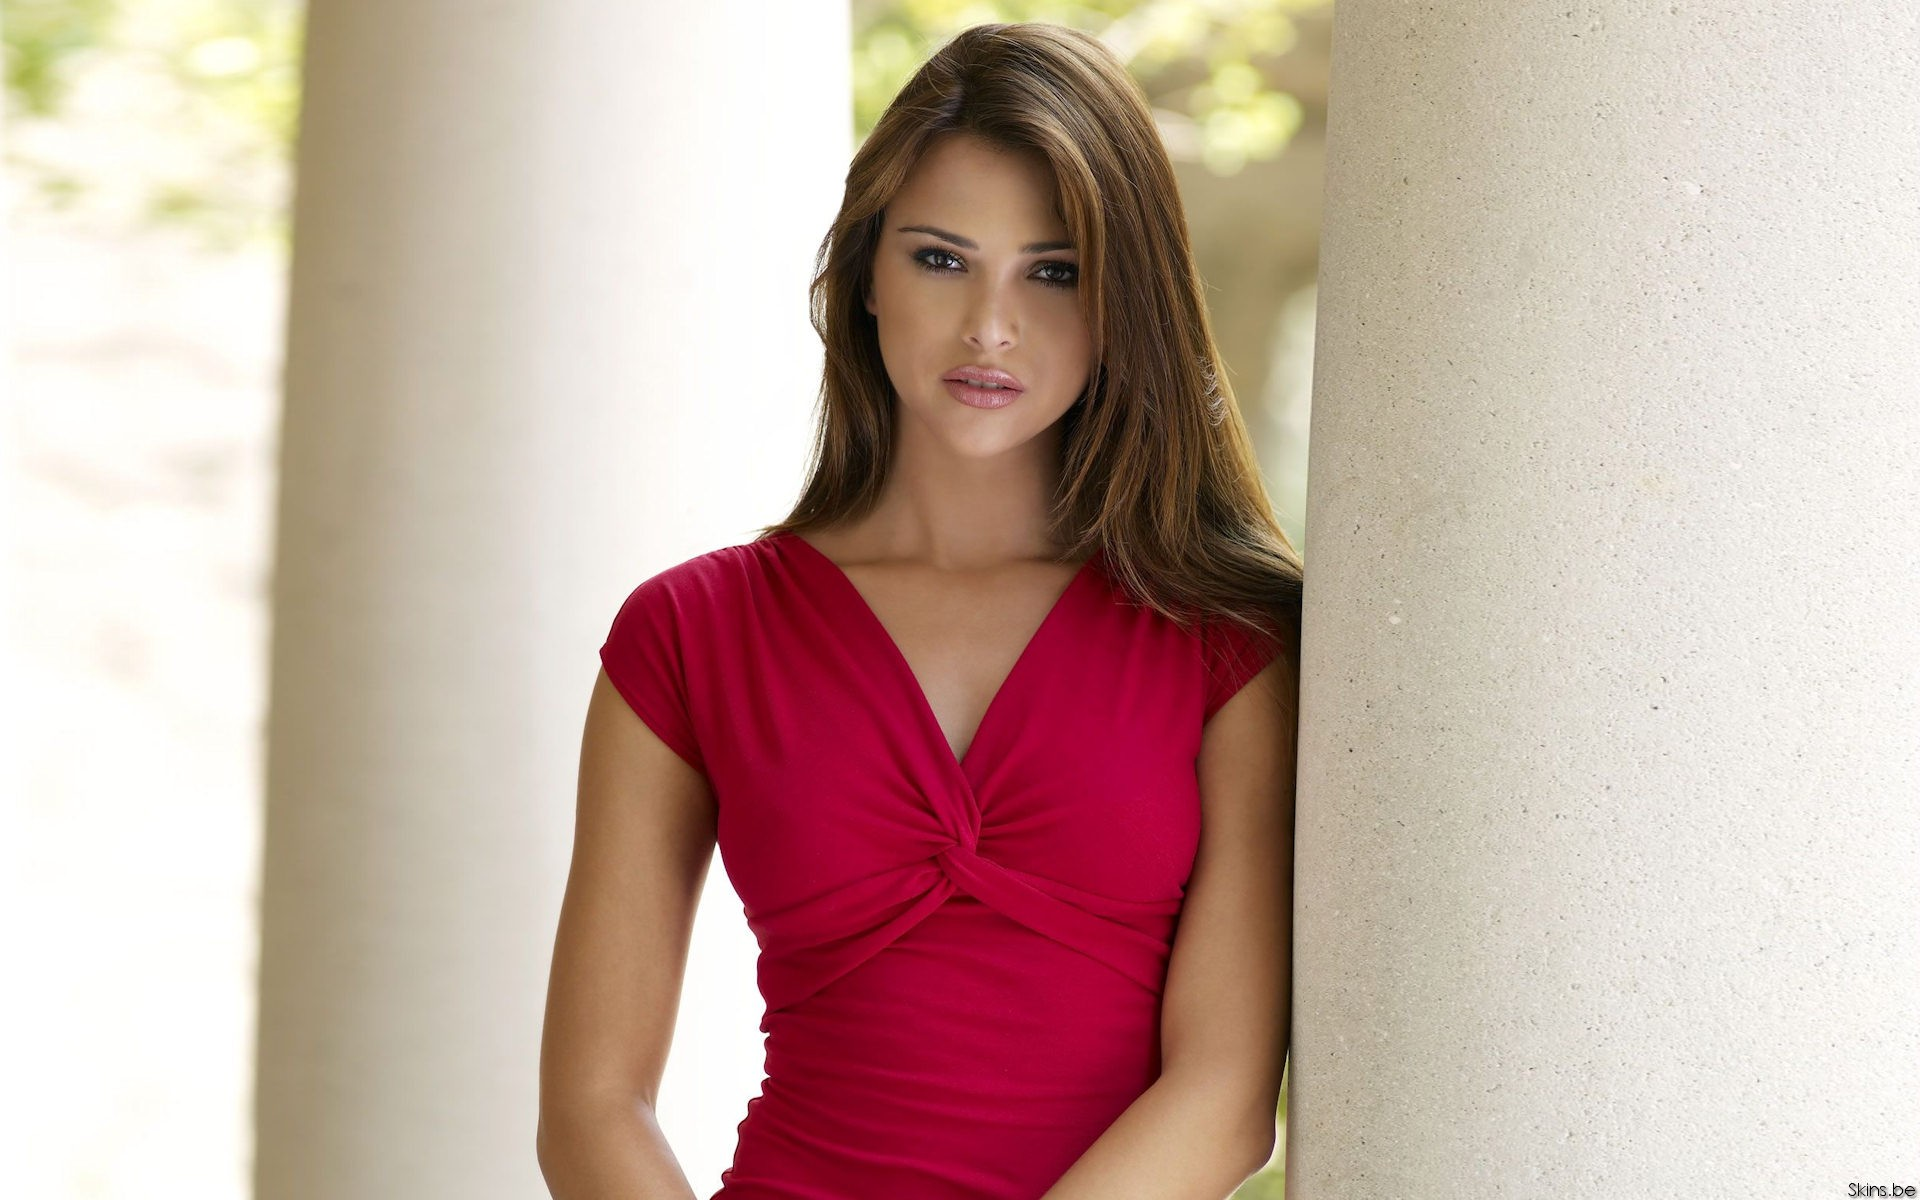 woman brunettes red dress HD Wallpaper